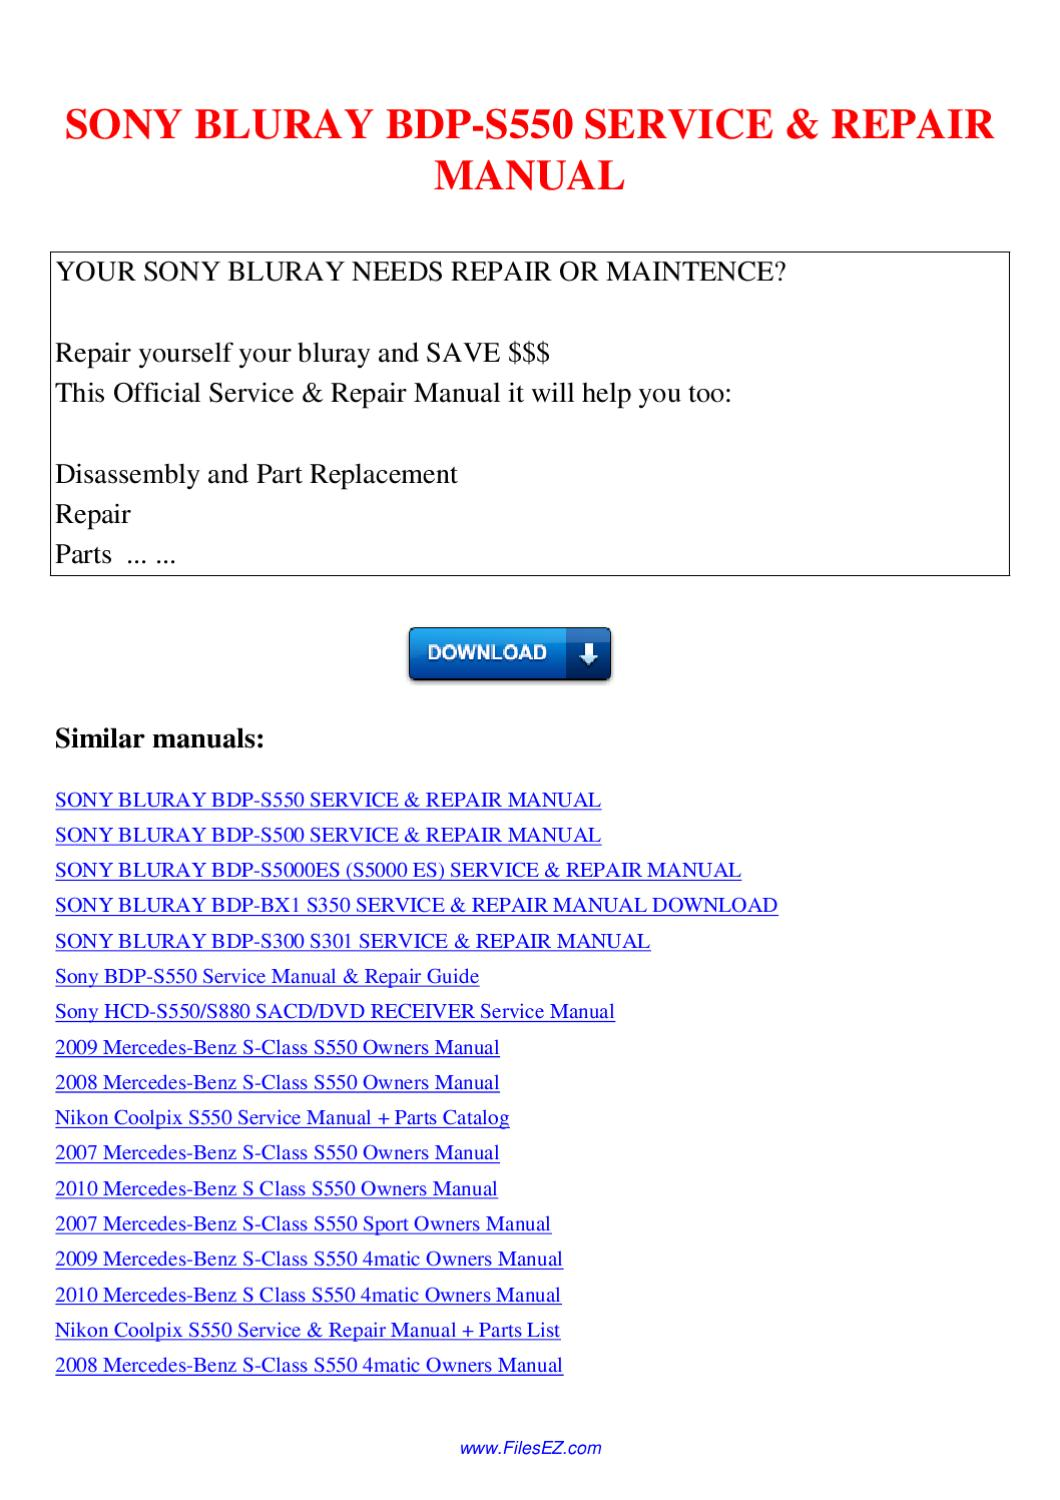 Sony Bluray Bdp S550 Service Repair Manual By Nana Hong Issuu